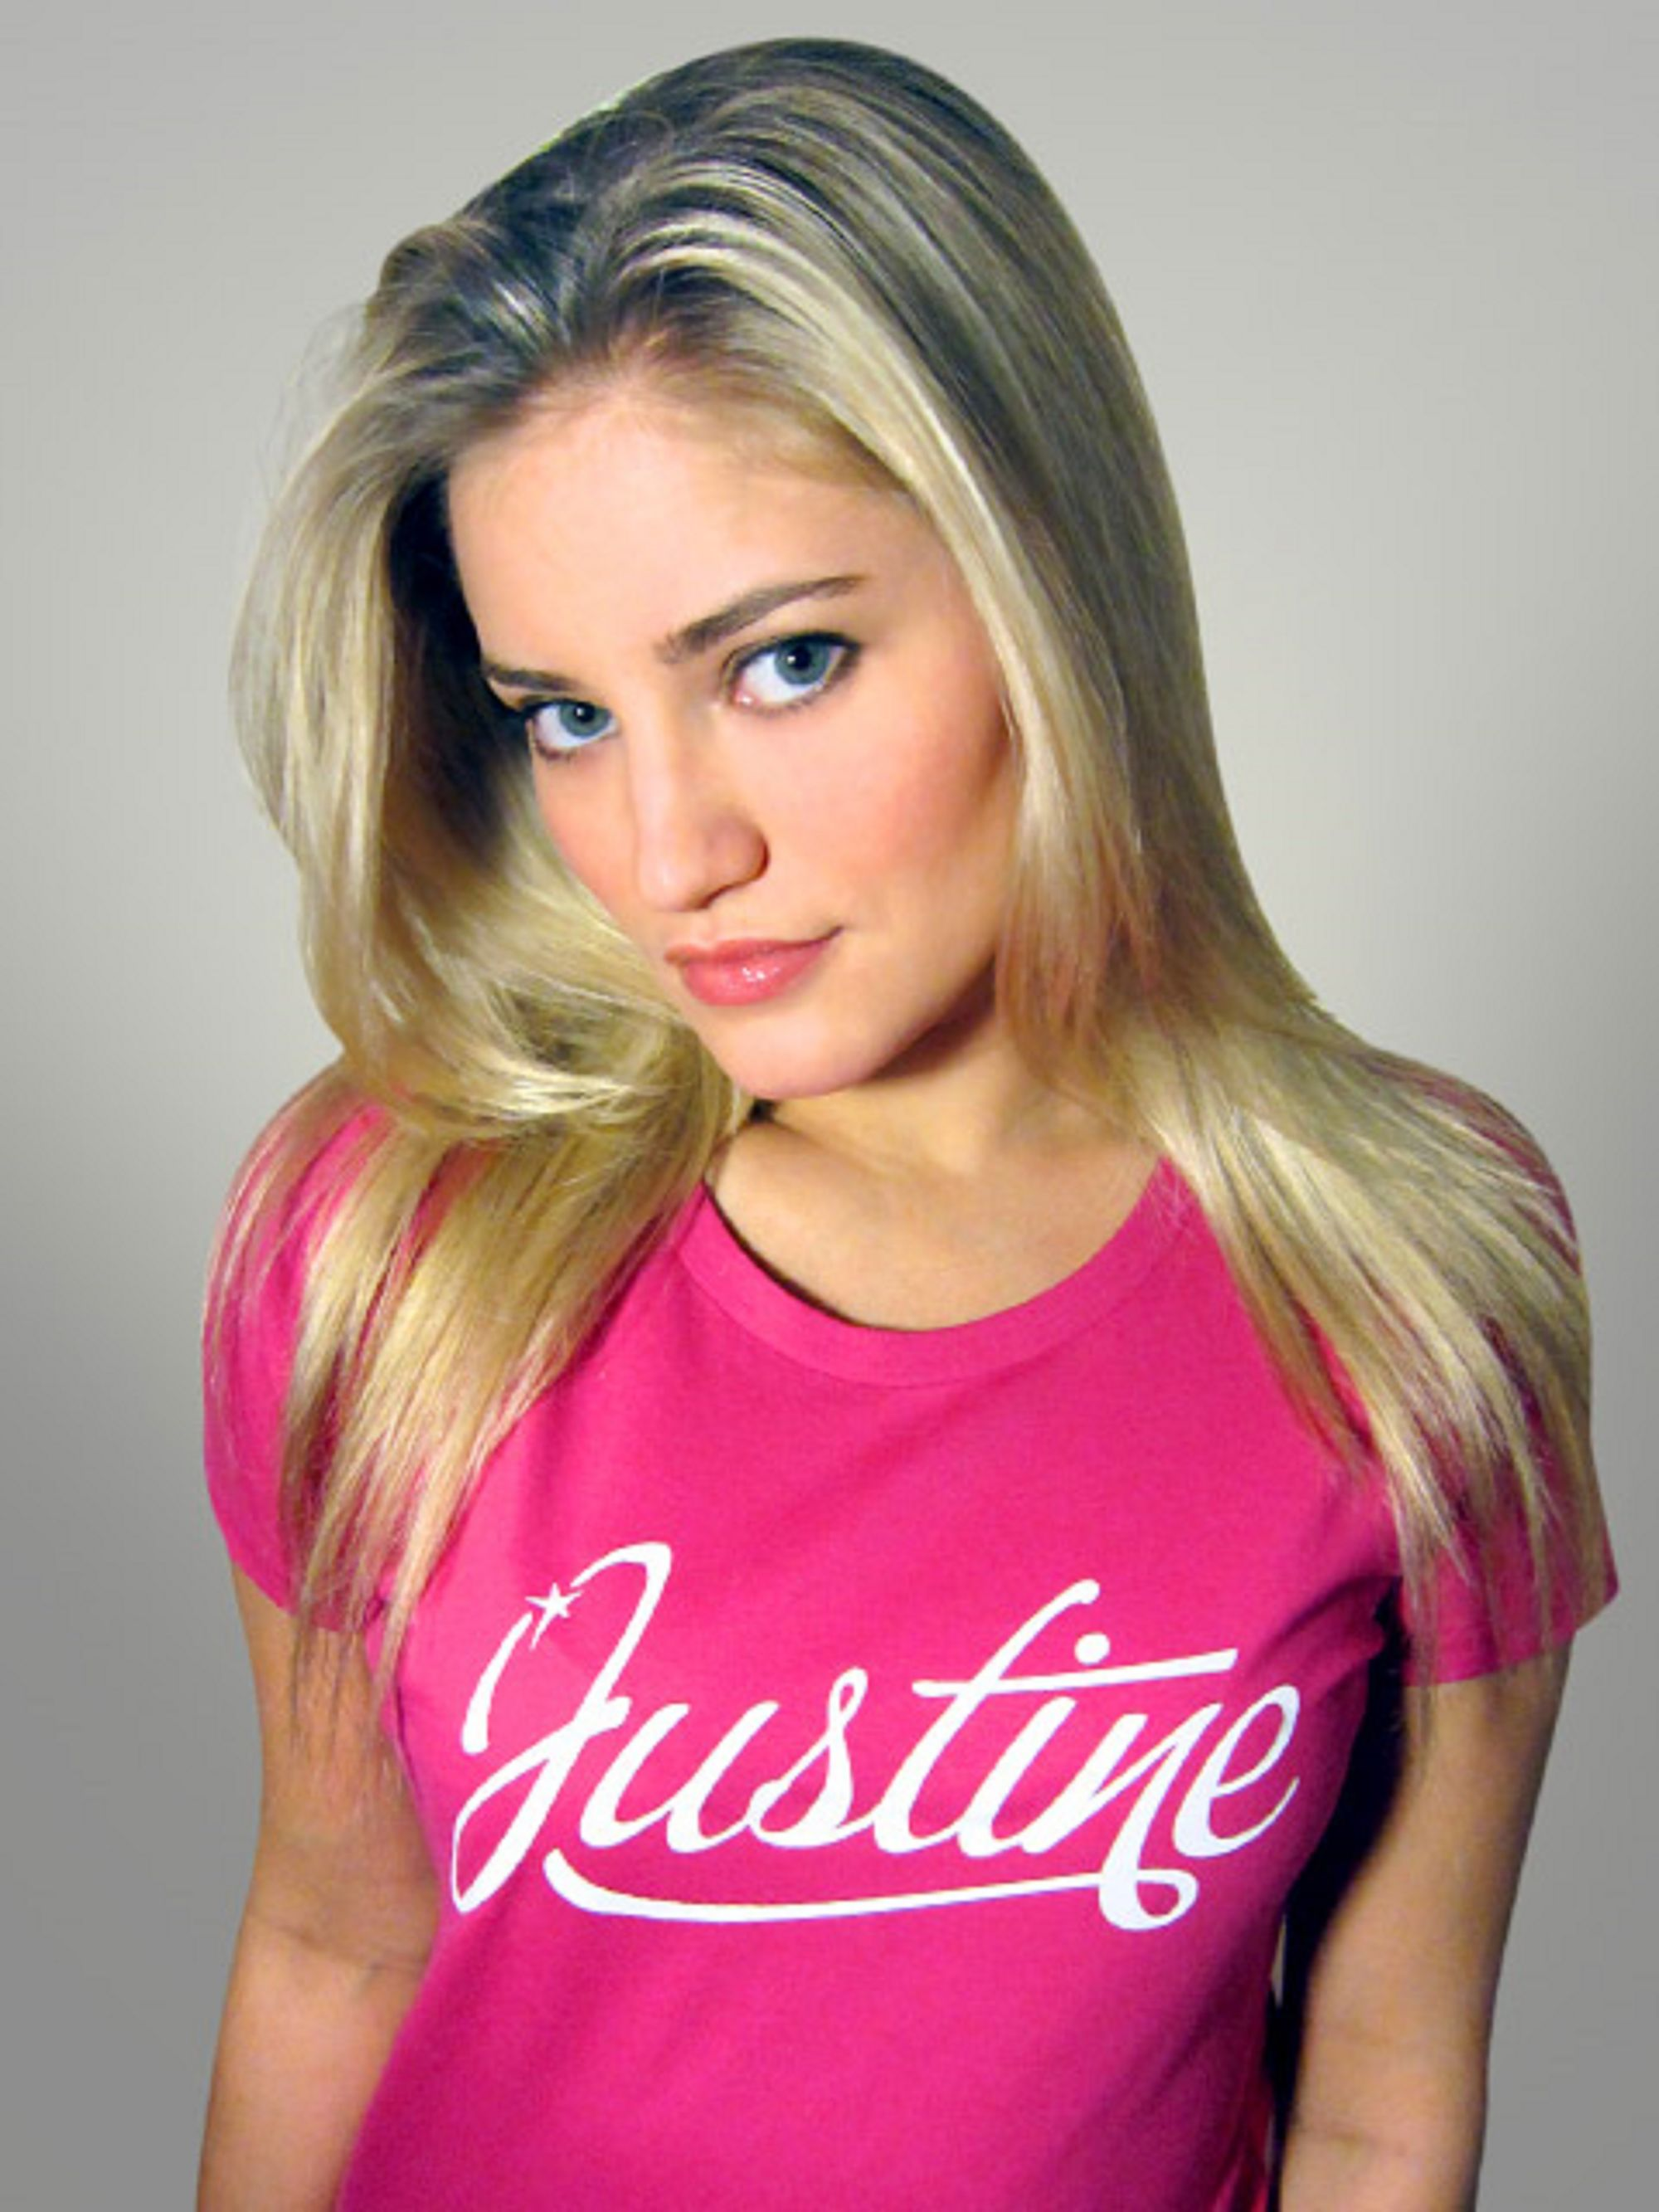 60+ Hot And Sexy Pictures Of Justine Ezarik a.k.a iJustine